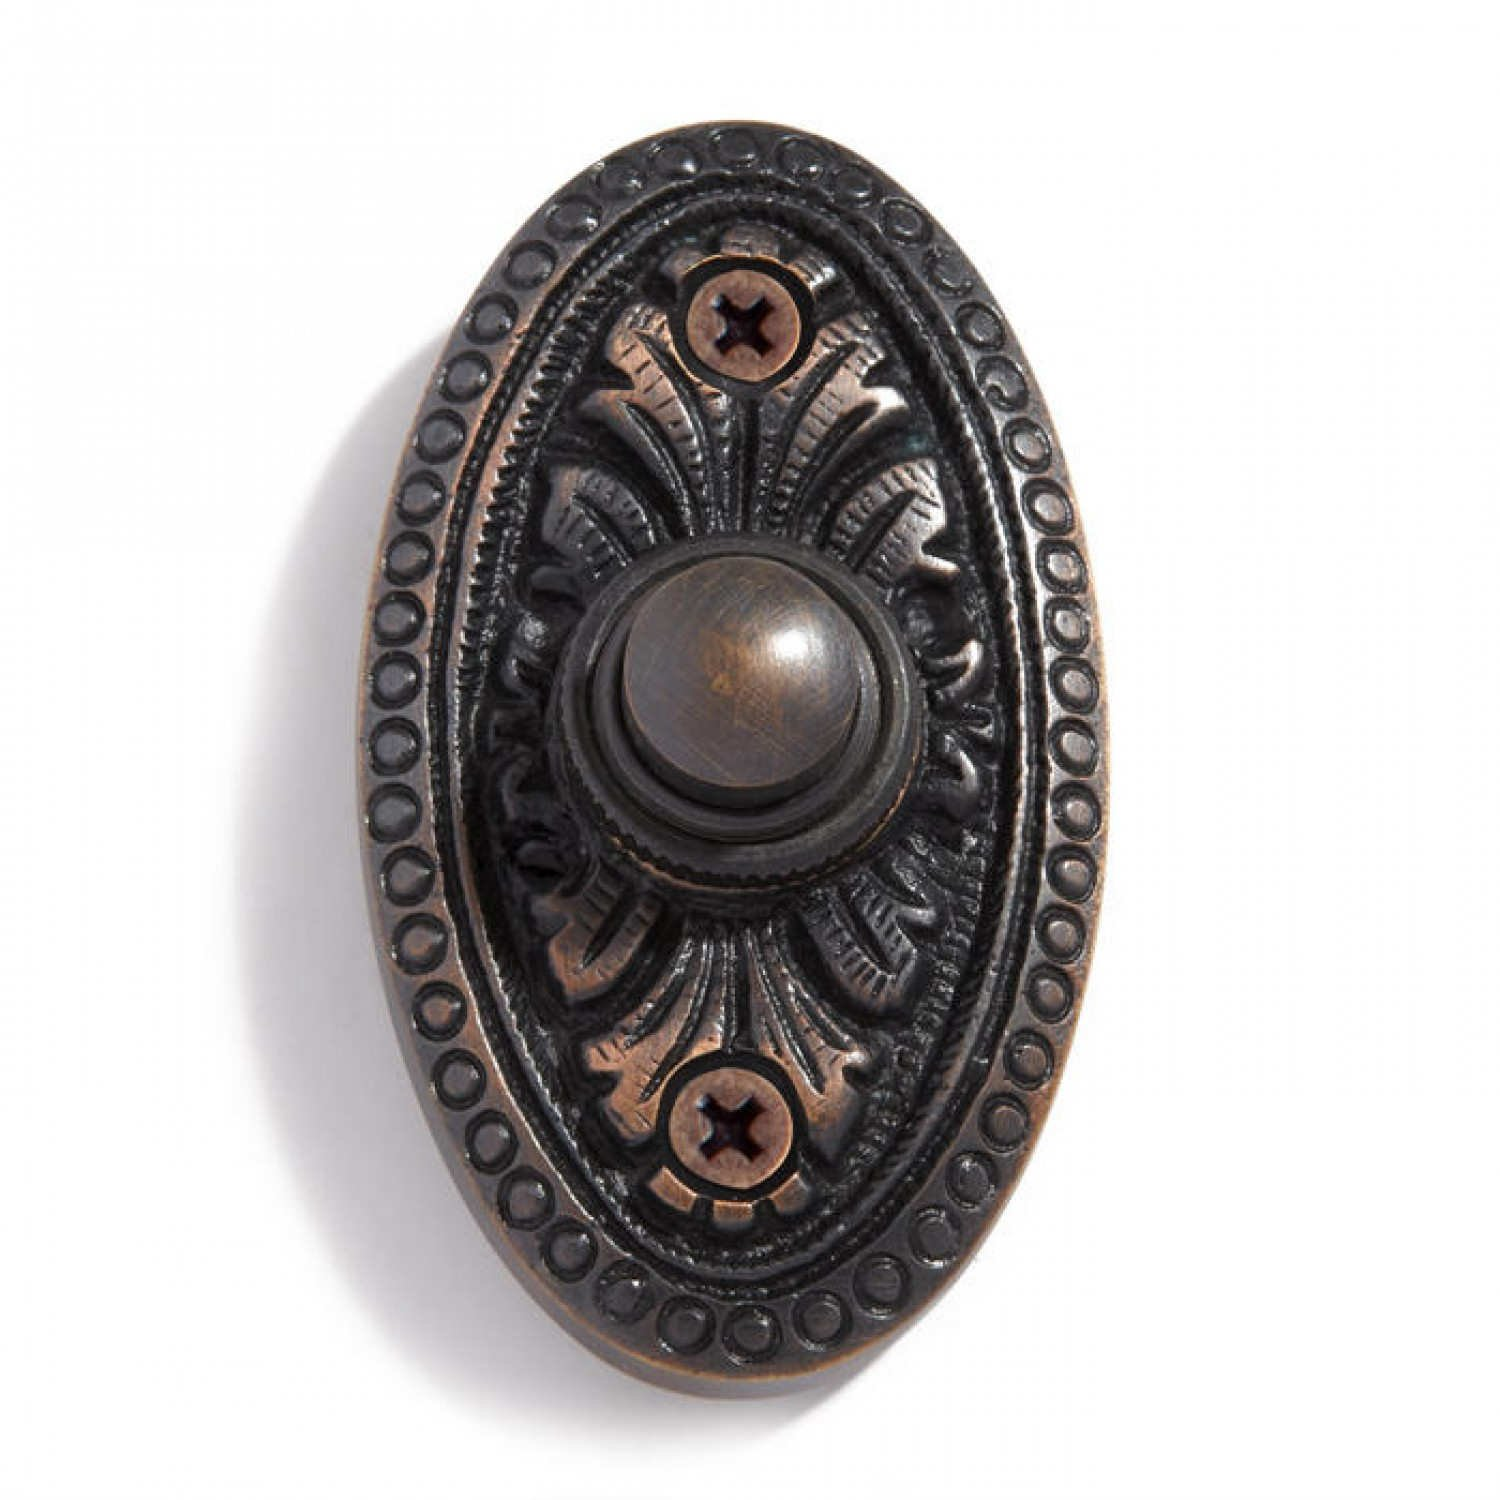 Casa Hardware Recessed Mounted Deep Style Solid Brass Oval Doorbell with Push Button in Oil Rubbed Bronze Finish